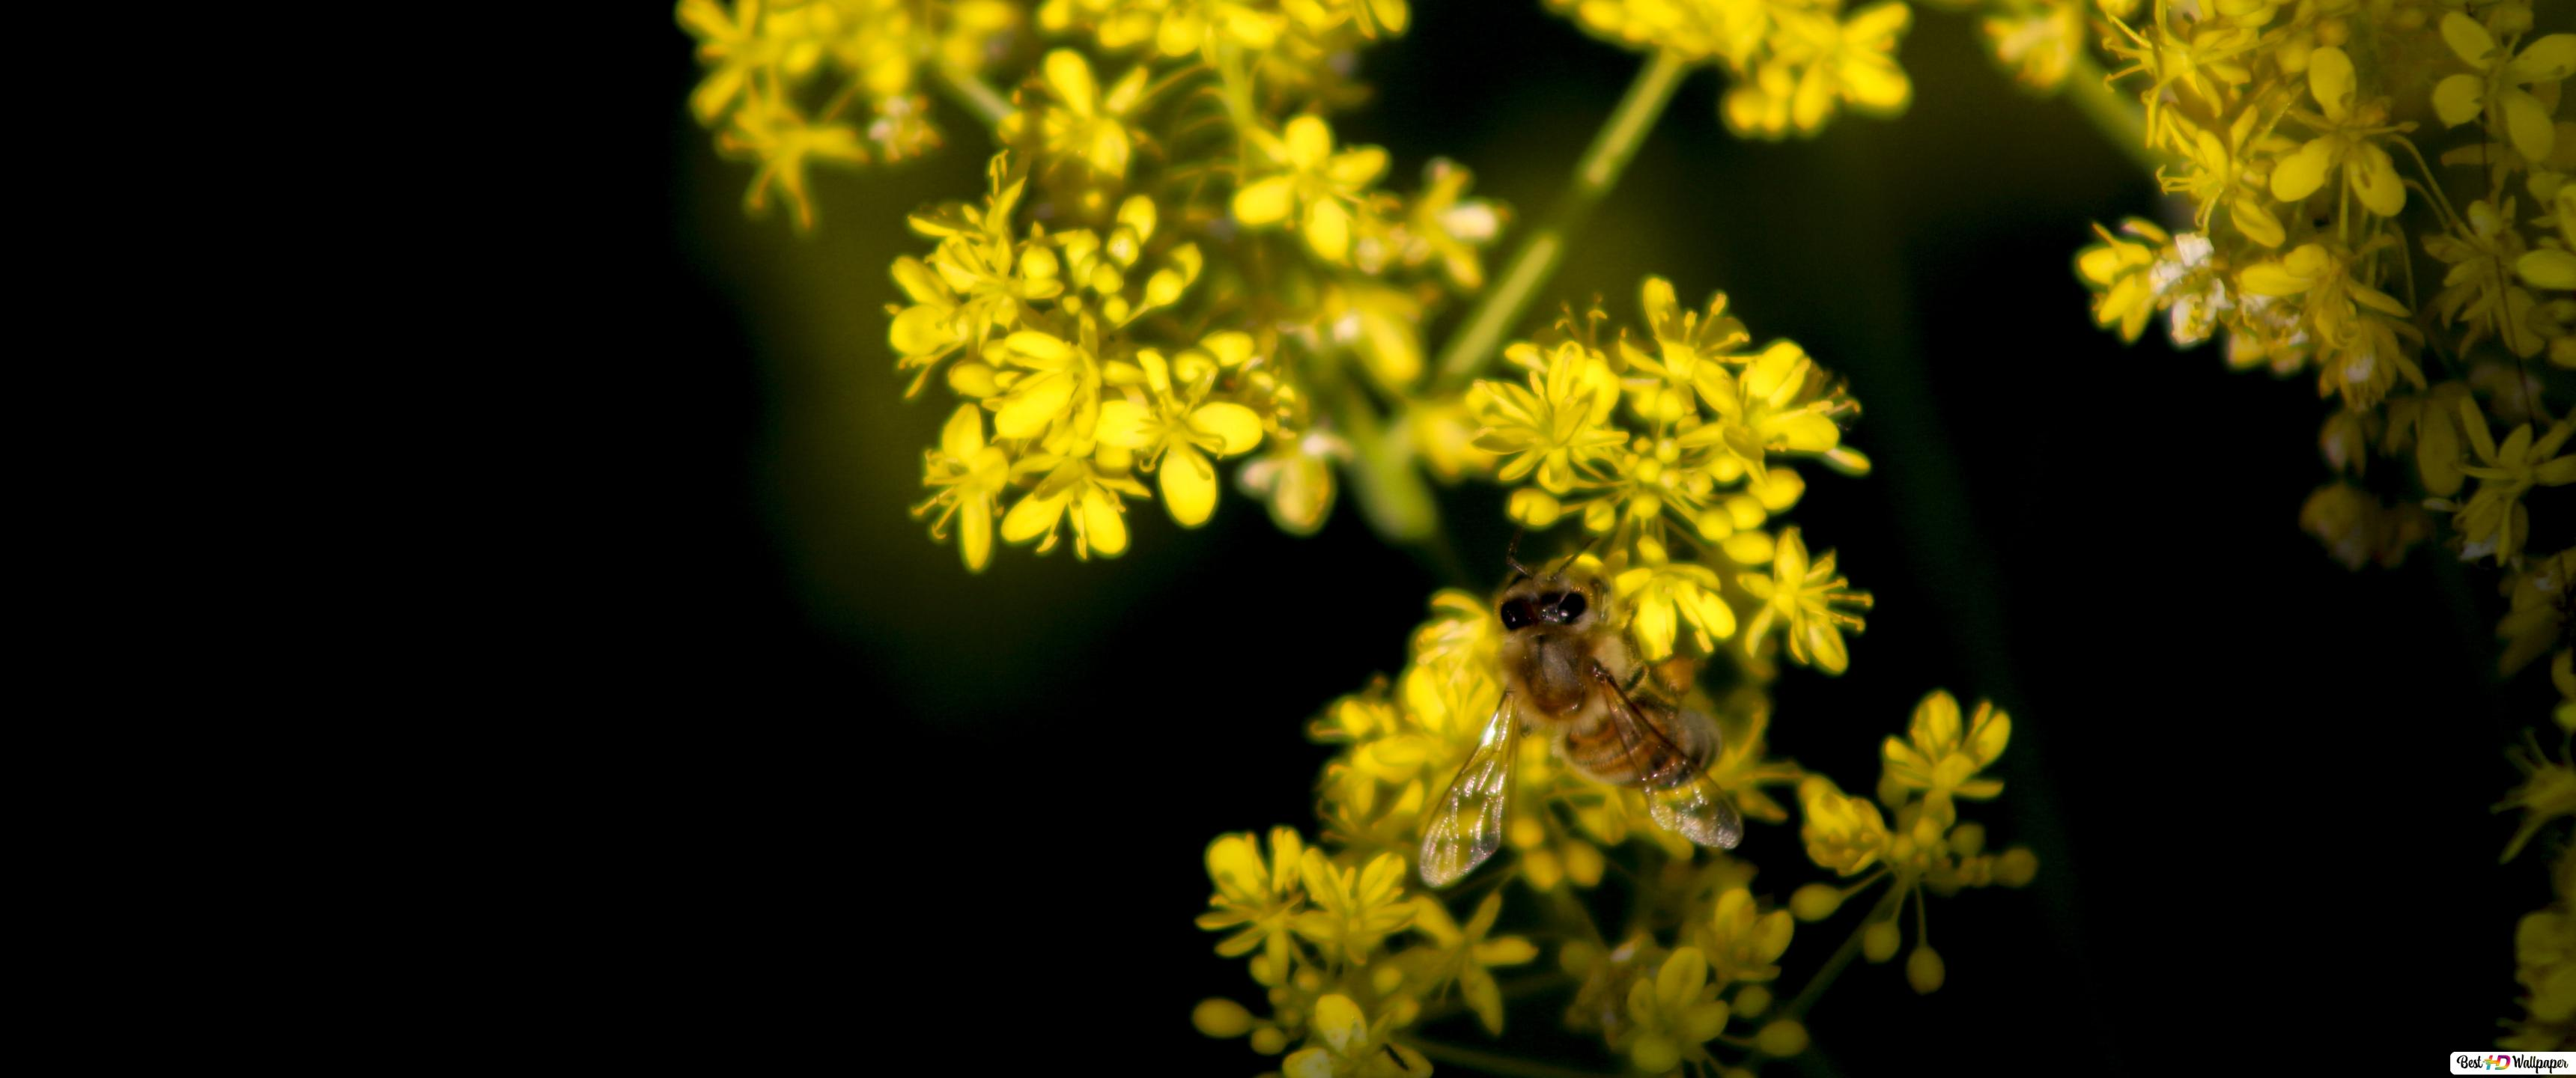 Bee And Yellow Flowers Hd Wallpaper Download